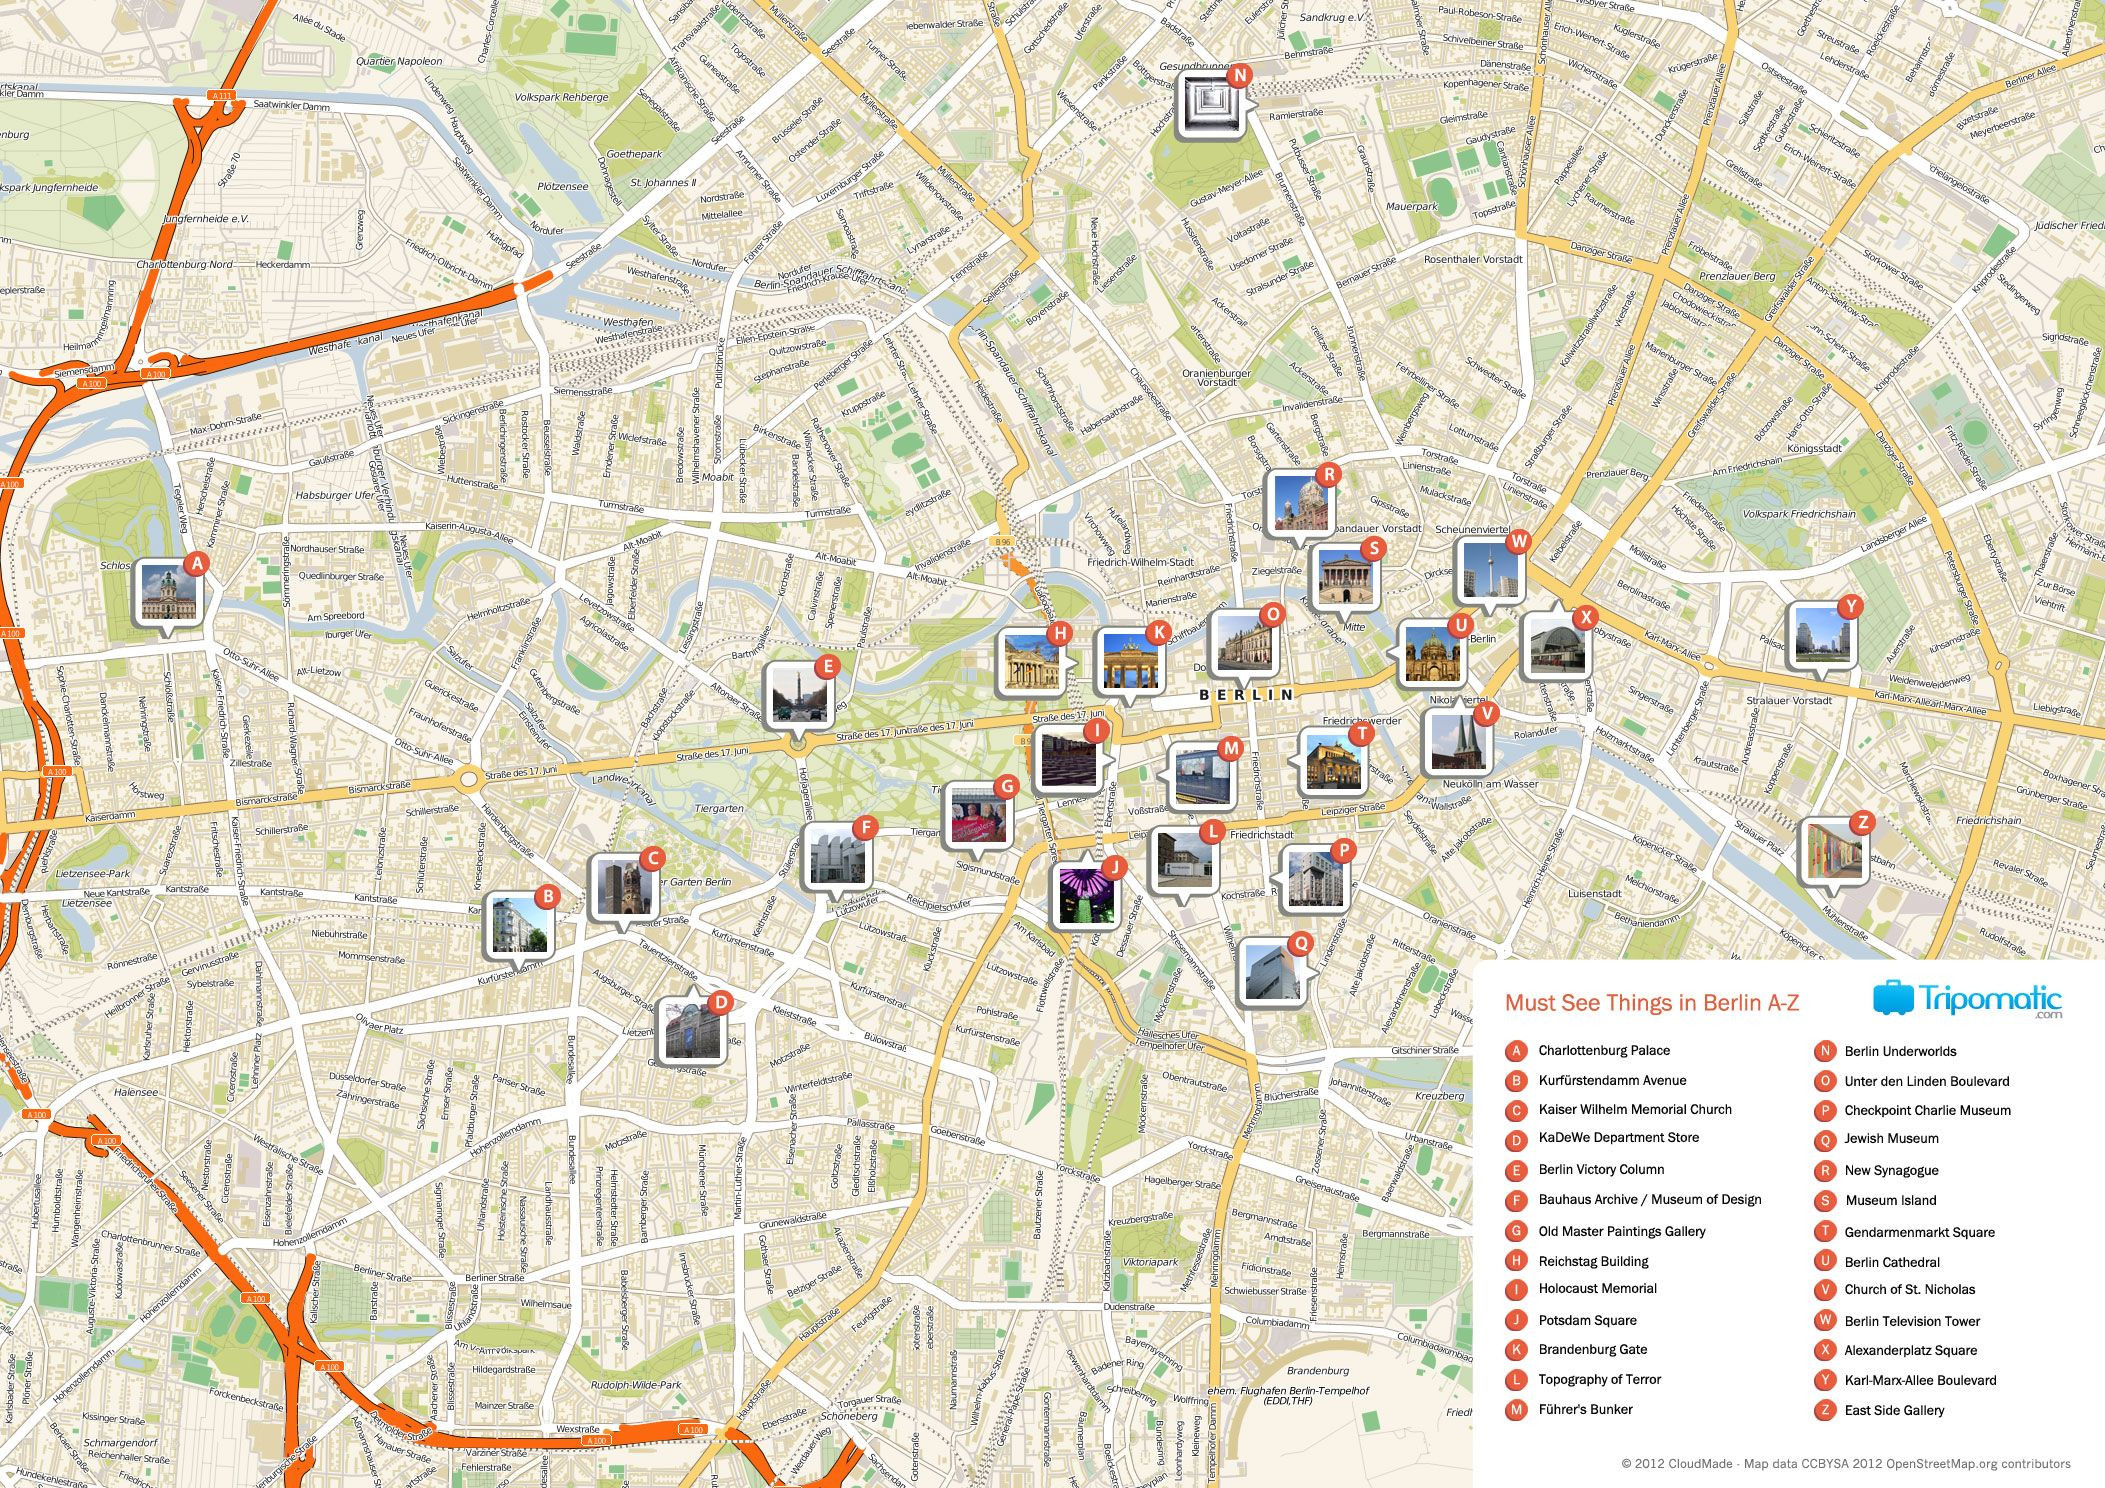 Printable Map Zurich Inspirational Map Of Berlin Tourist Sights And Attractions From Tripomatic